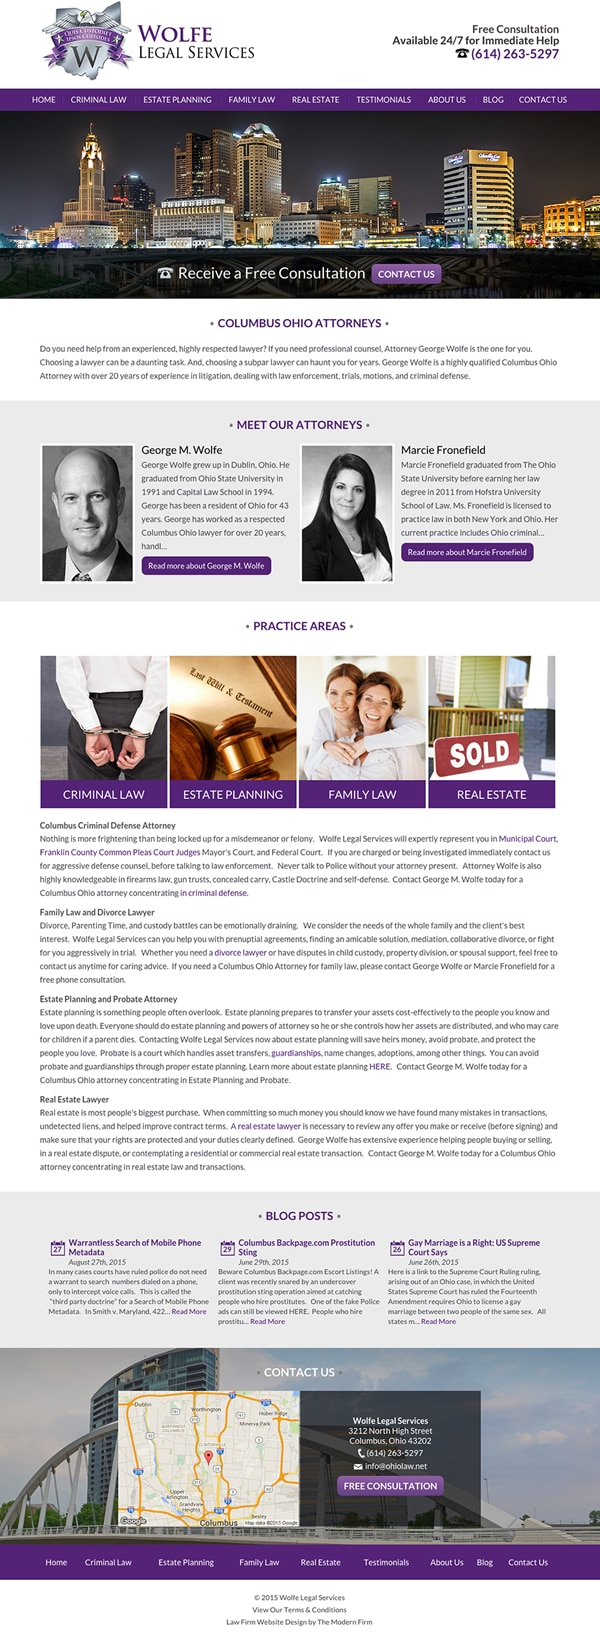 Law Firm Website for Wolfe Legal Services